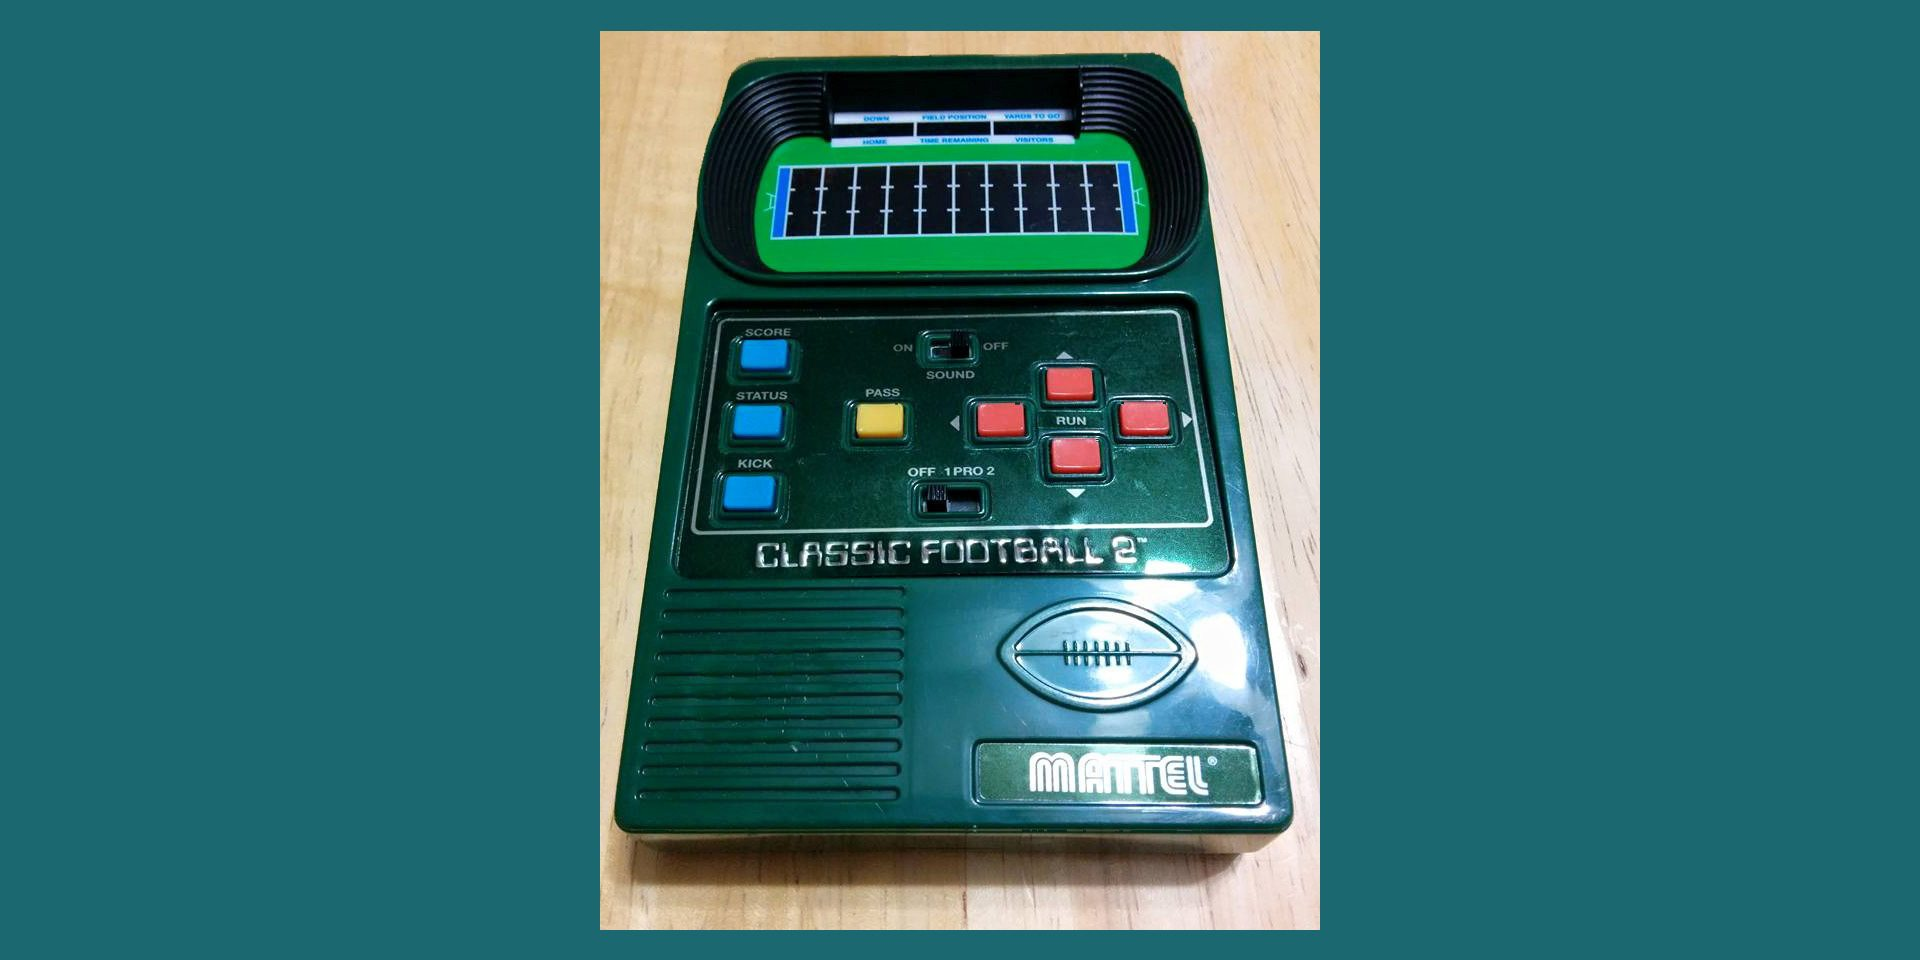 Mattel Football Video Game